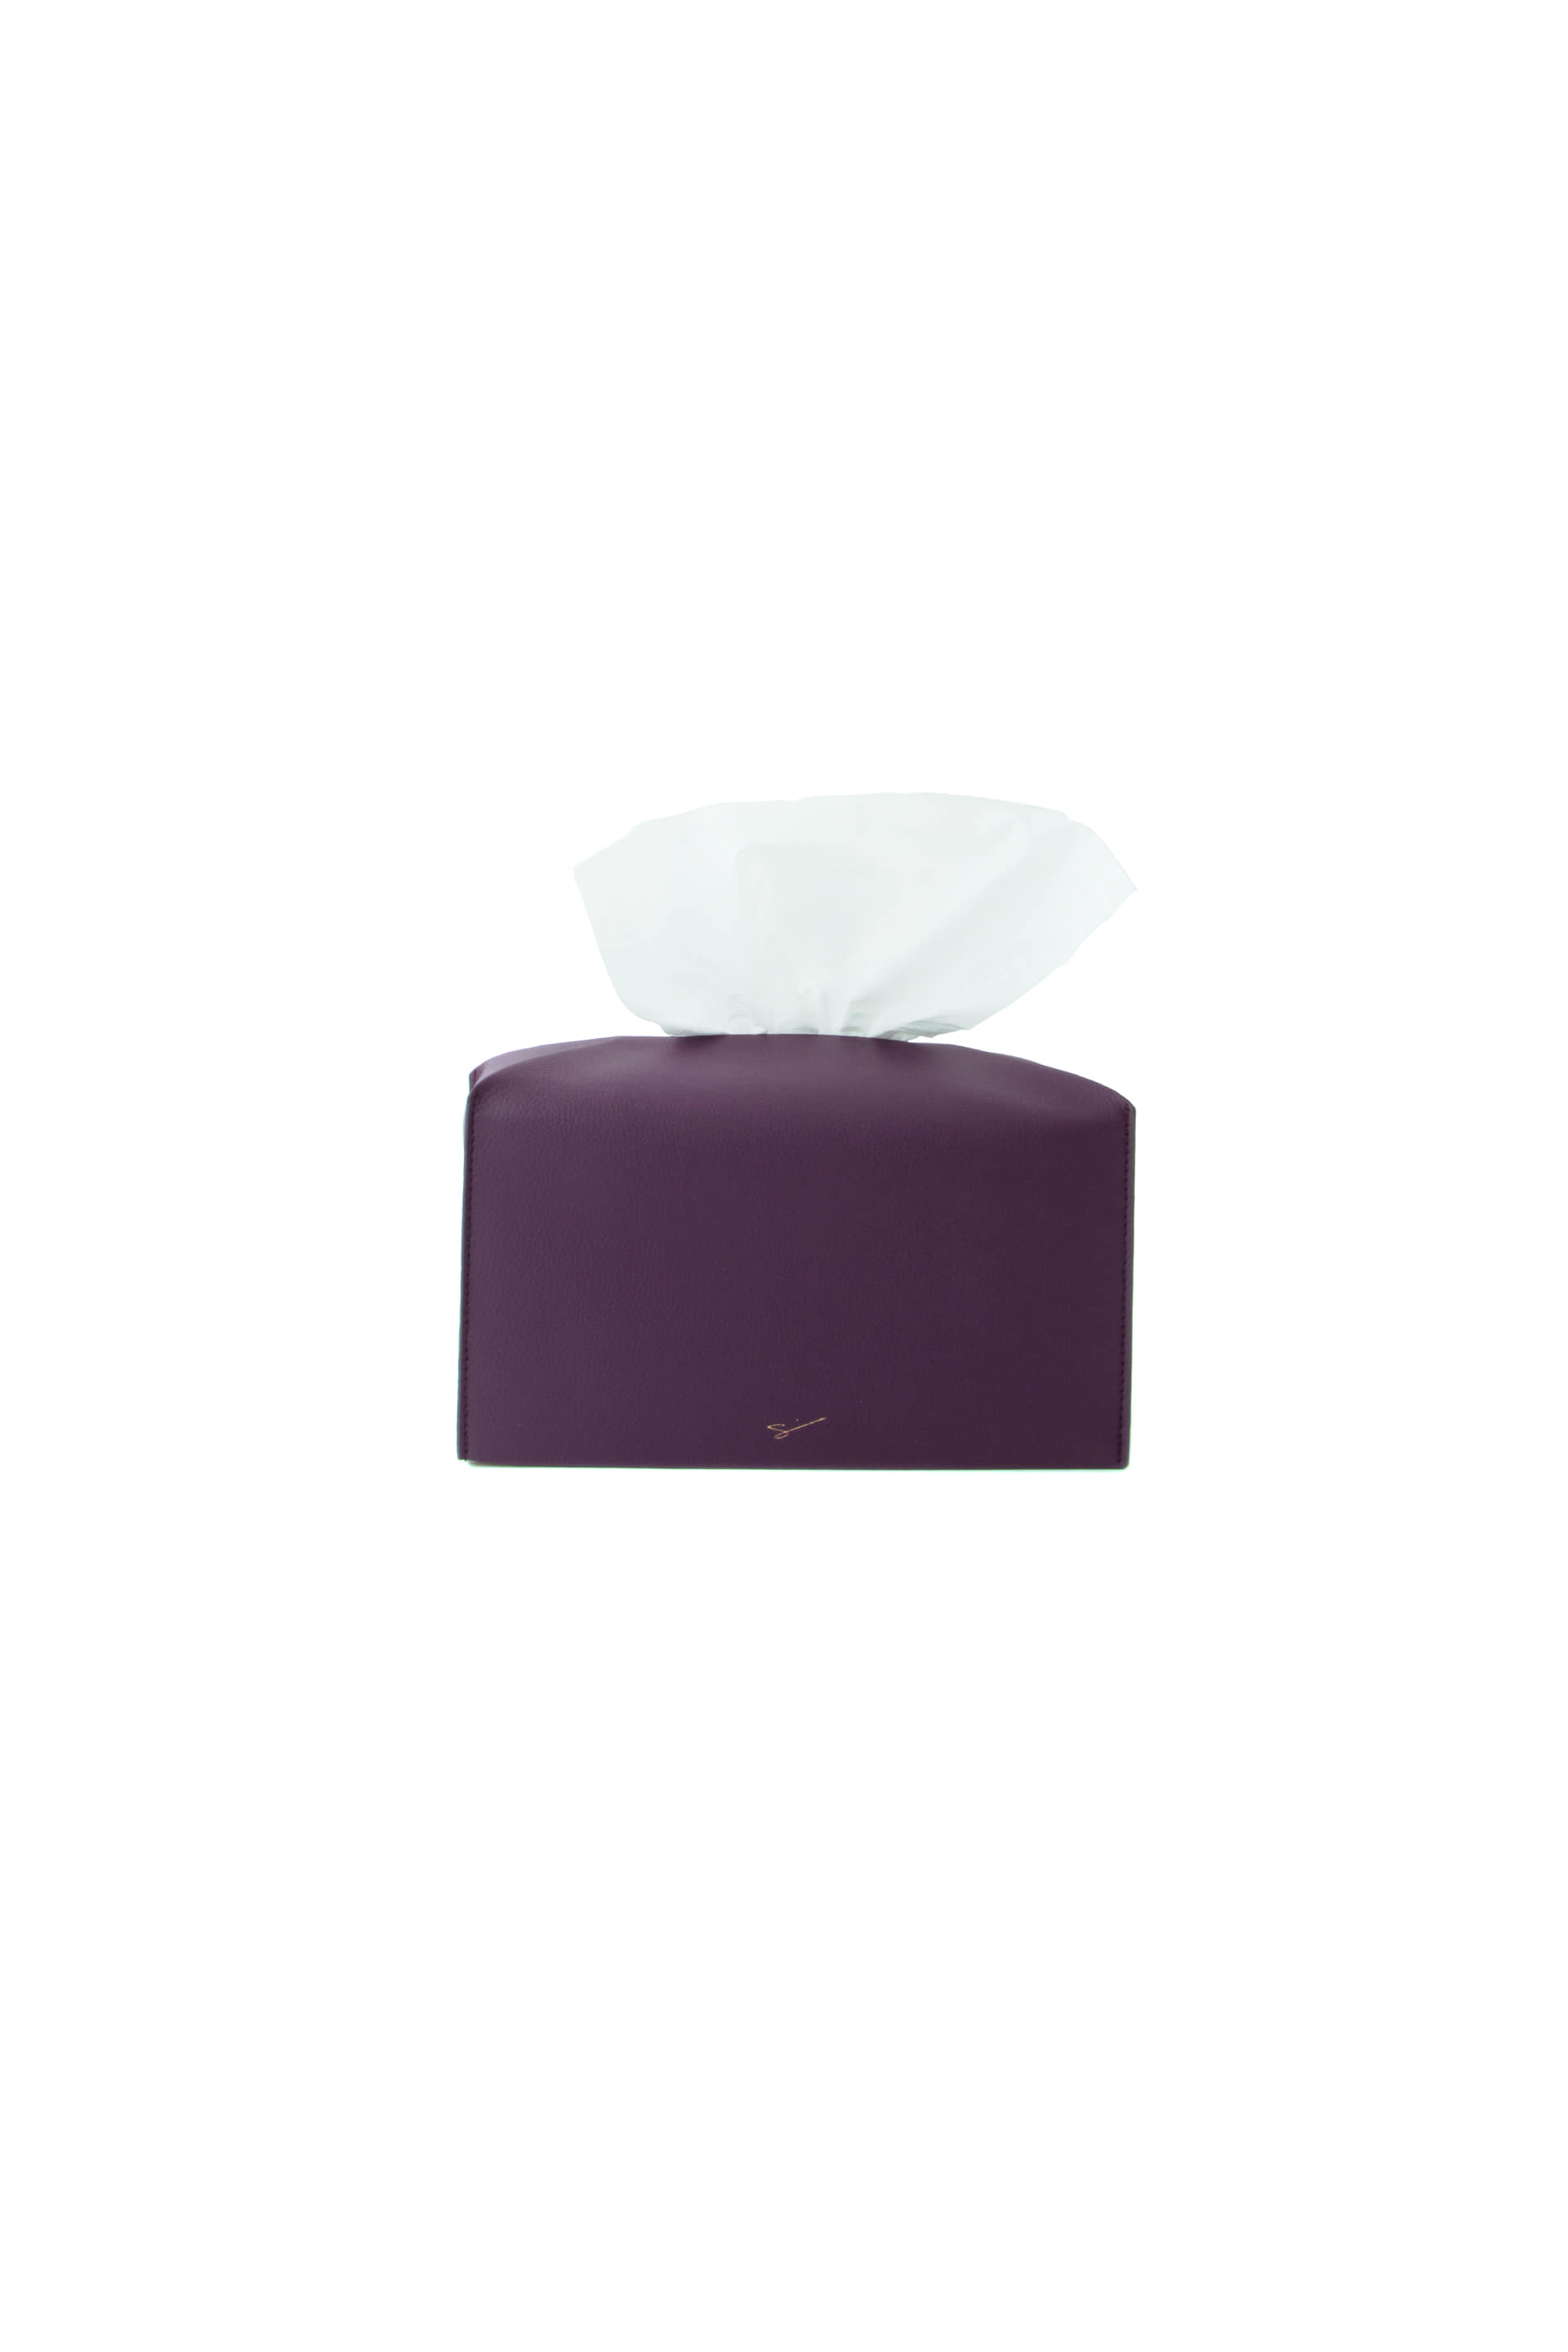 TISSUE CASE L 18 Purple